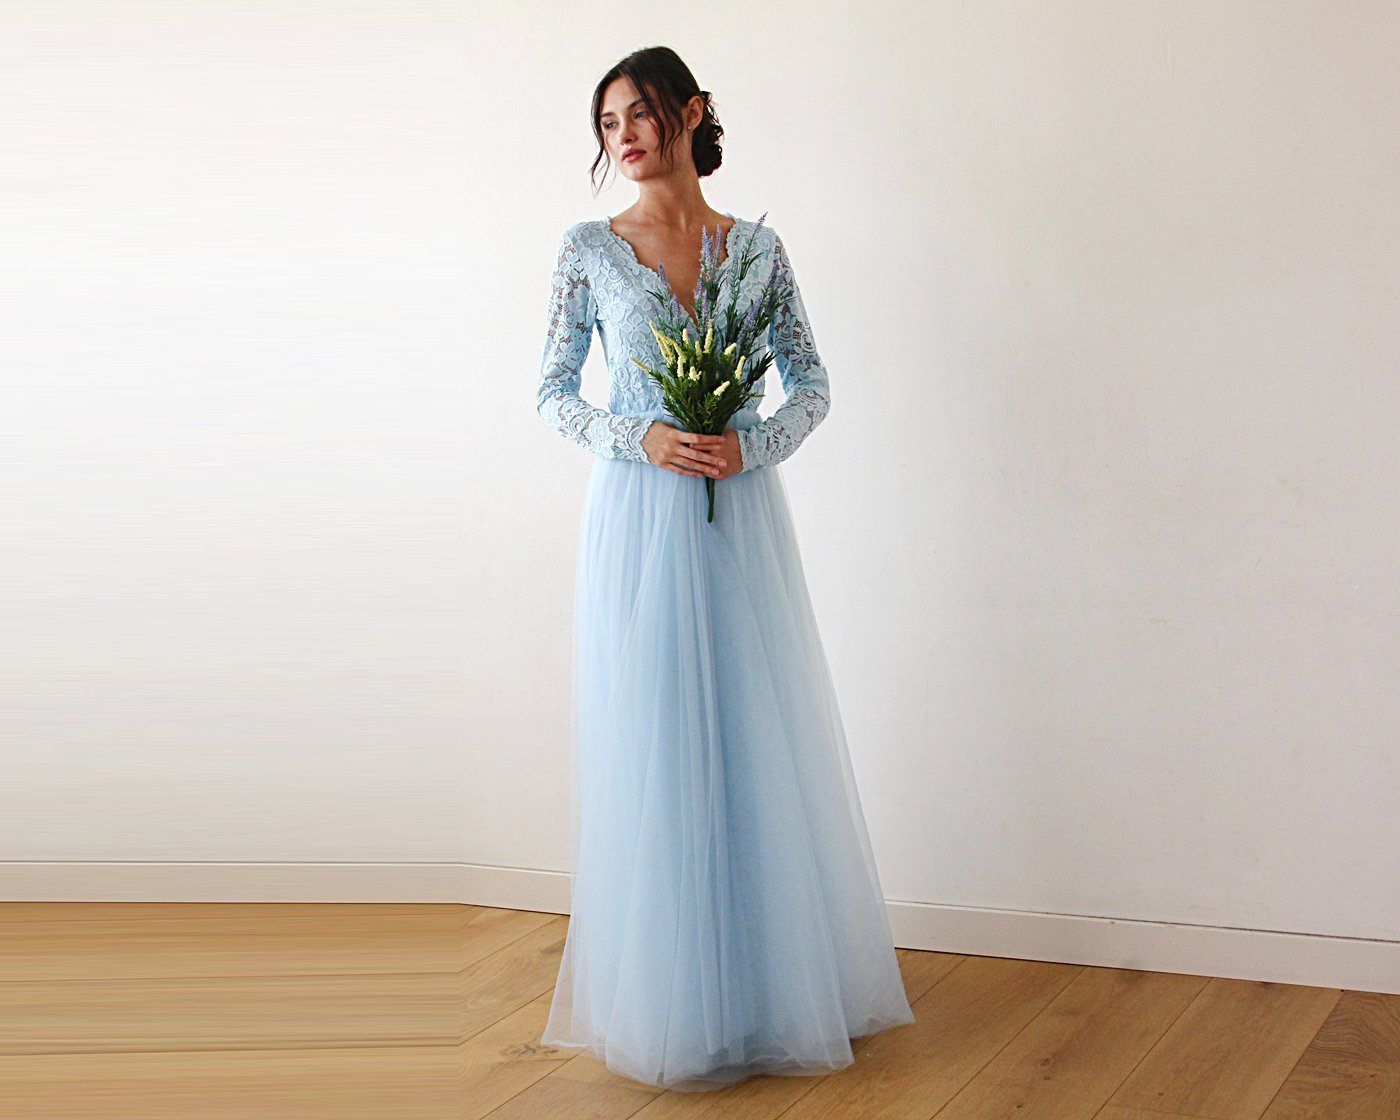 Light Blue Tulle and Lace Long Sleeve Wedding Maxi Dress 1125 - Blushfashion